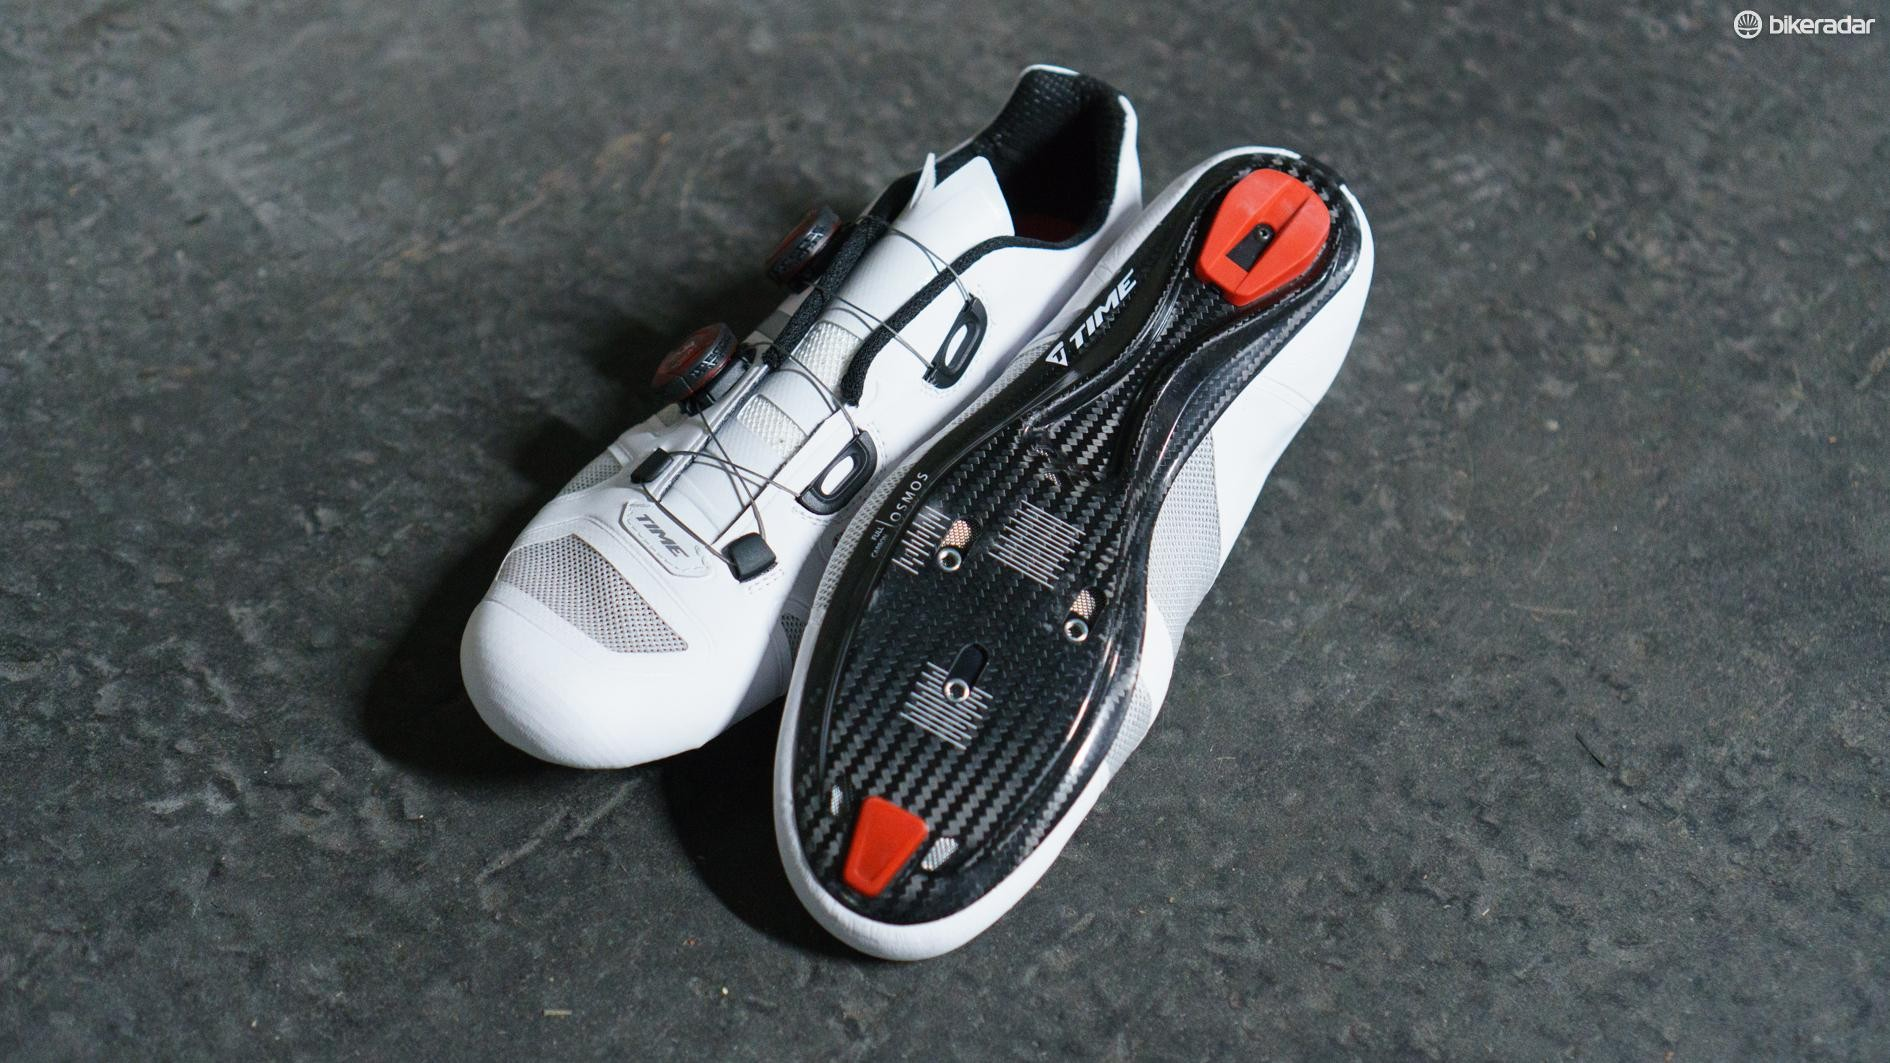 The shoes are available in three different price points. We have the top-end OSMOS 15.